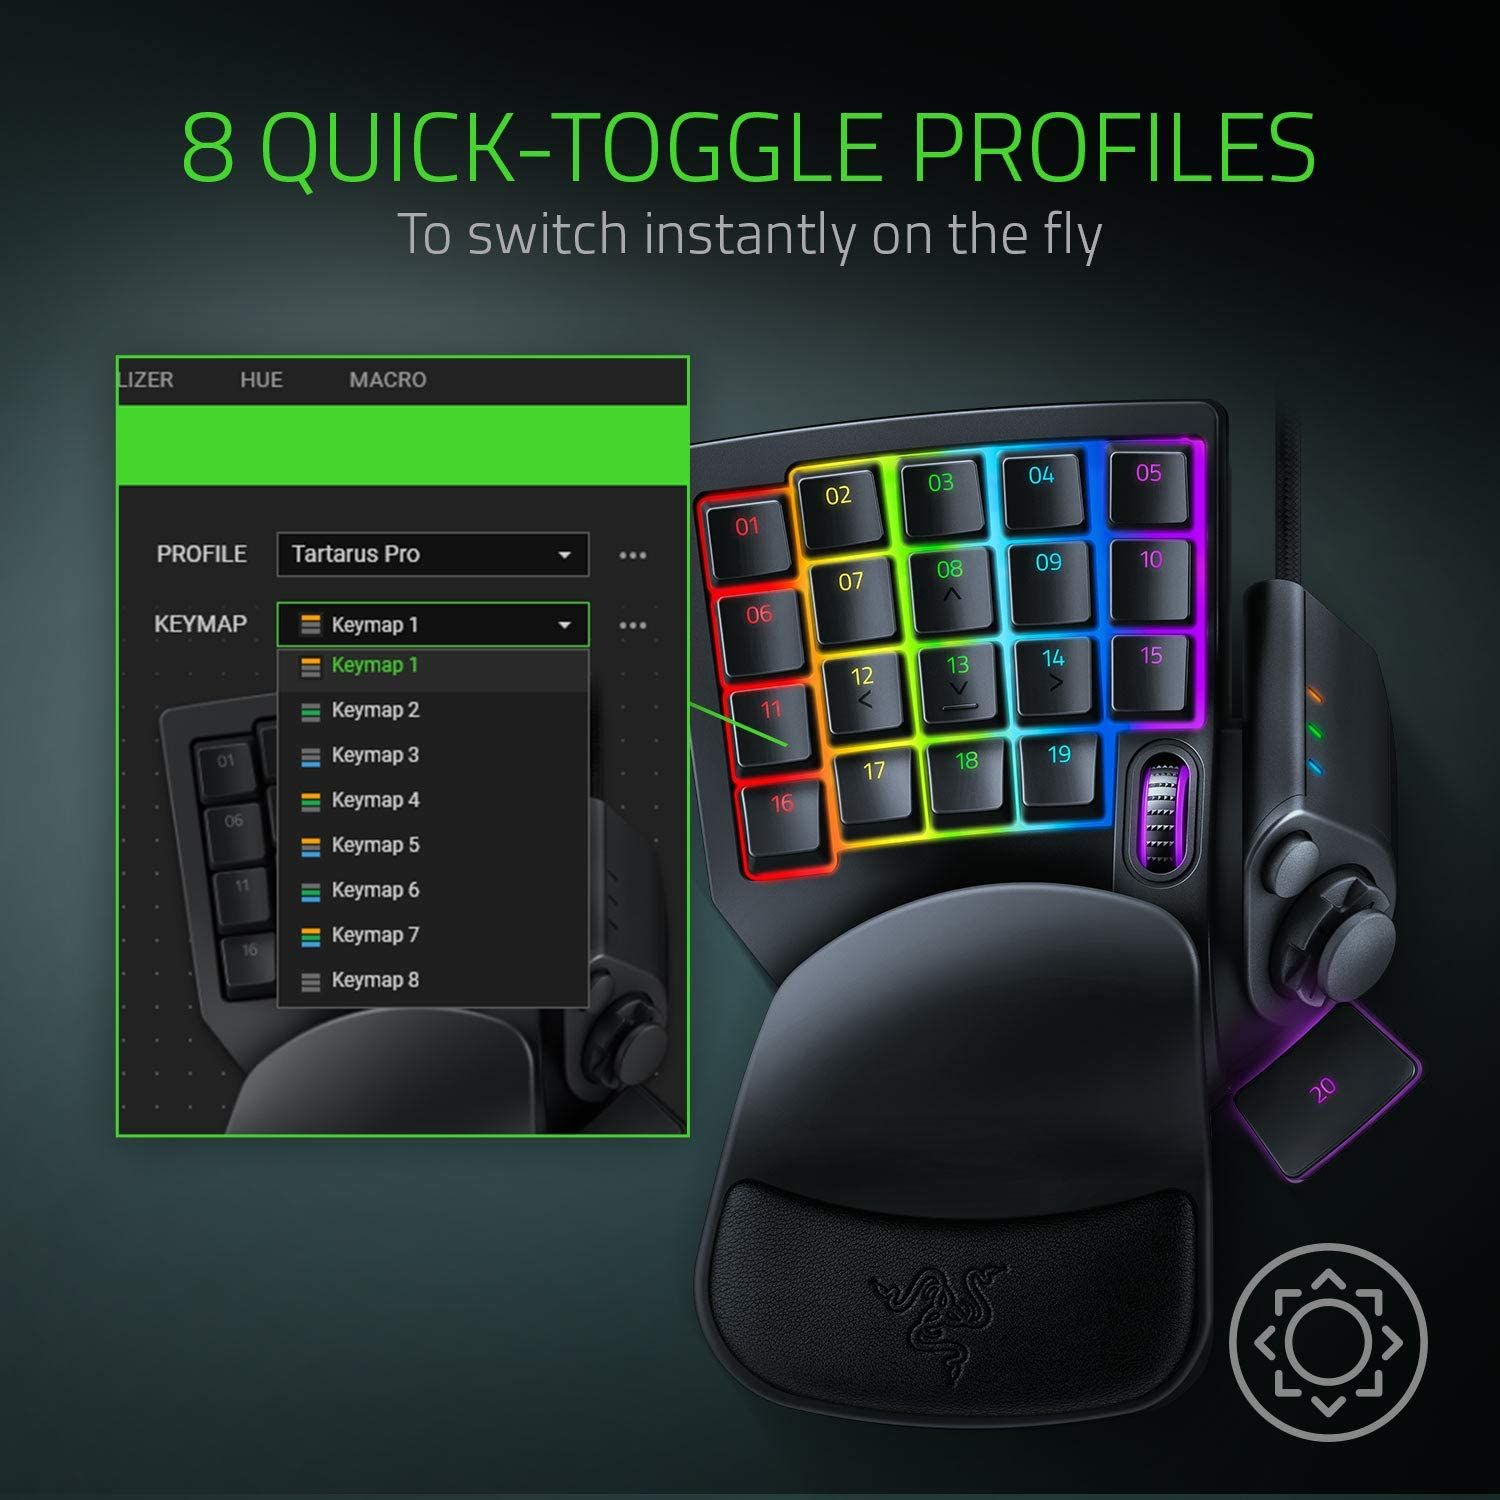 Tartarus Pro Gaming Keypad: Analog-Optical Key Switches - 32 Programmable Keys - Customizable Chroma RGB Lighting - Programmable Macros - Variable Key Press Pressure Sensitivity - Classic Black